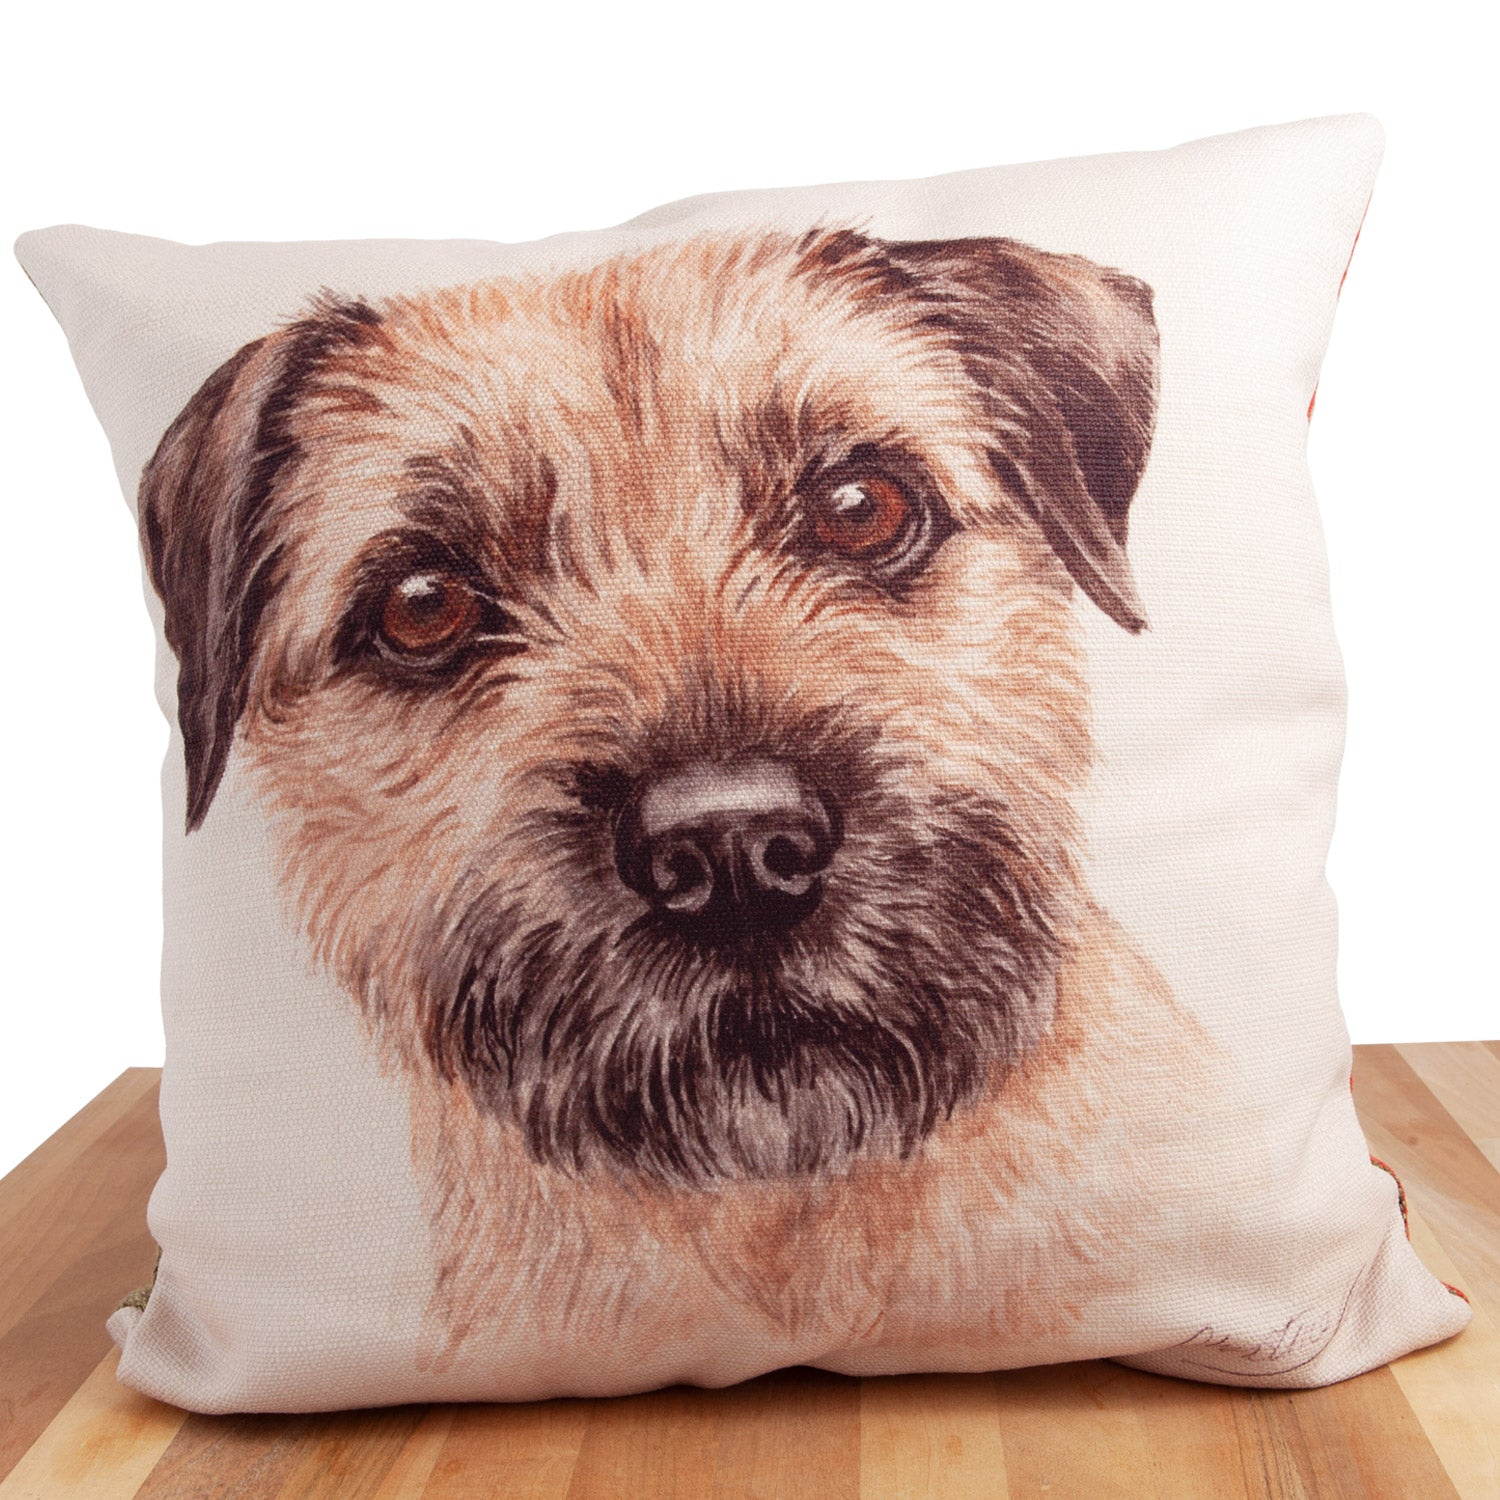 Dog Lover Gifts available at Dog Krazy Gifts. Border Terrier Cushion, part of our Christine Varley collection – available at www.dogkrazygifts.co.uk